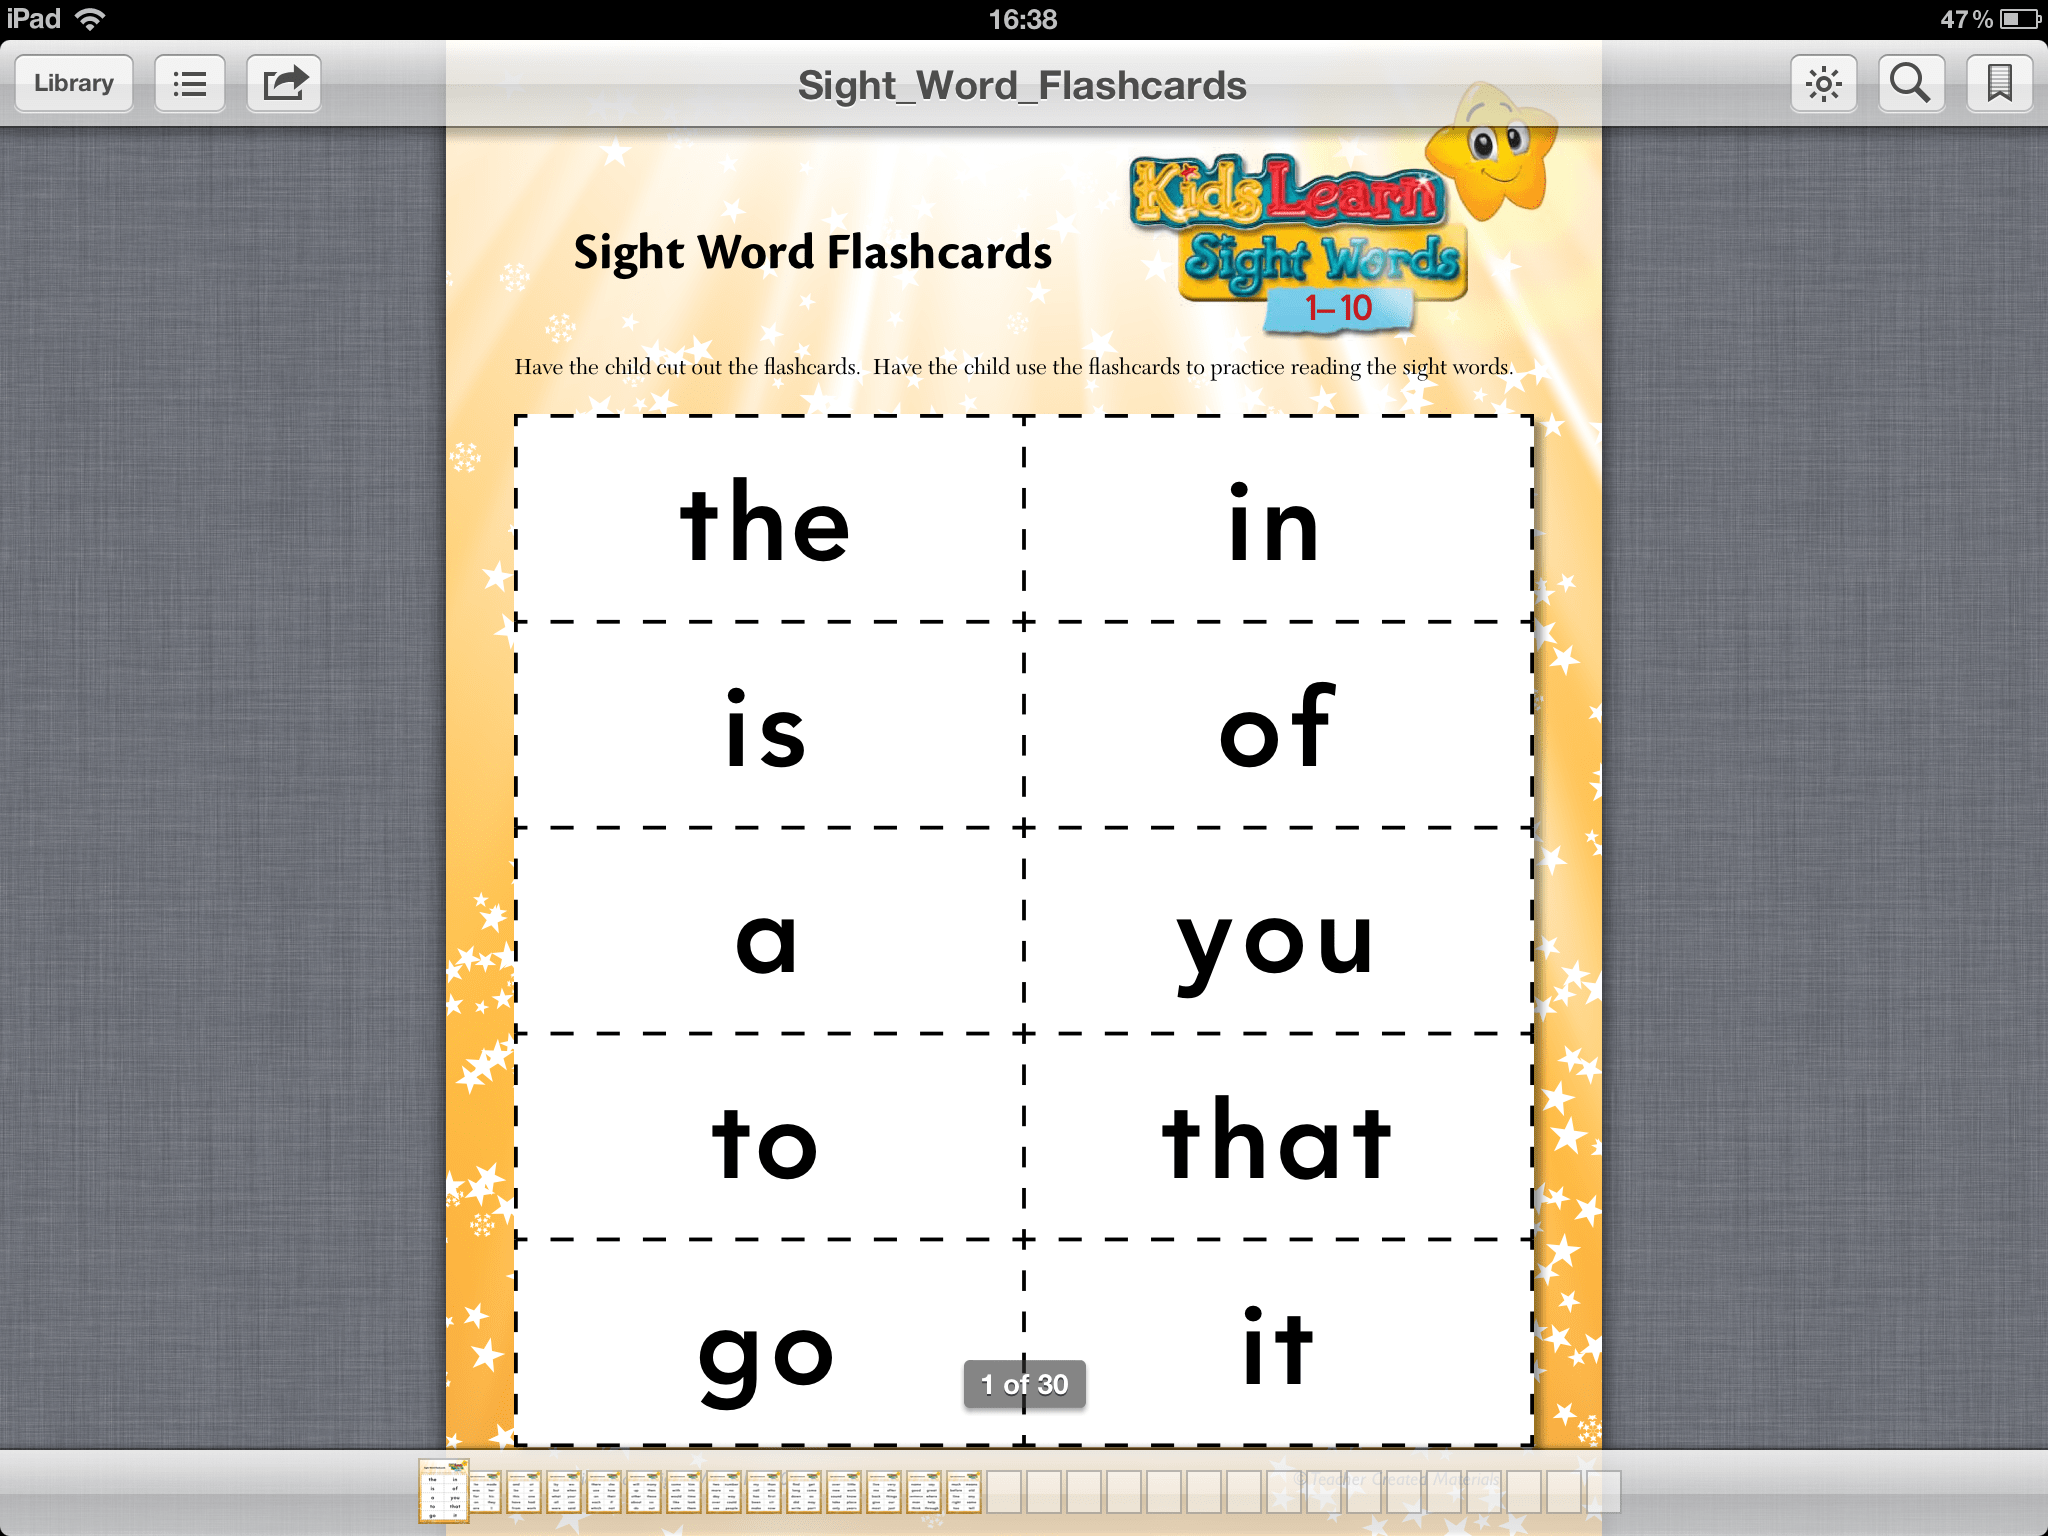 Free Sight Word App Missmernagh